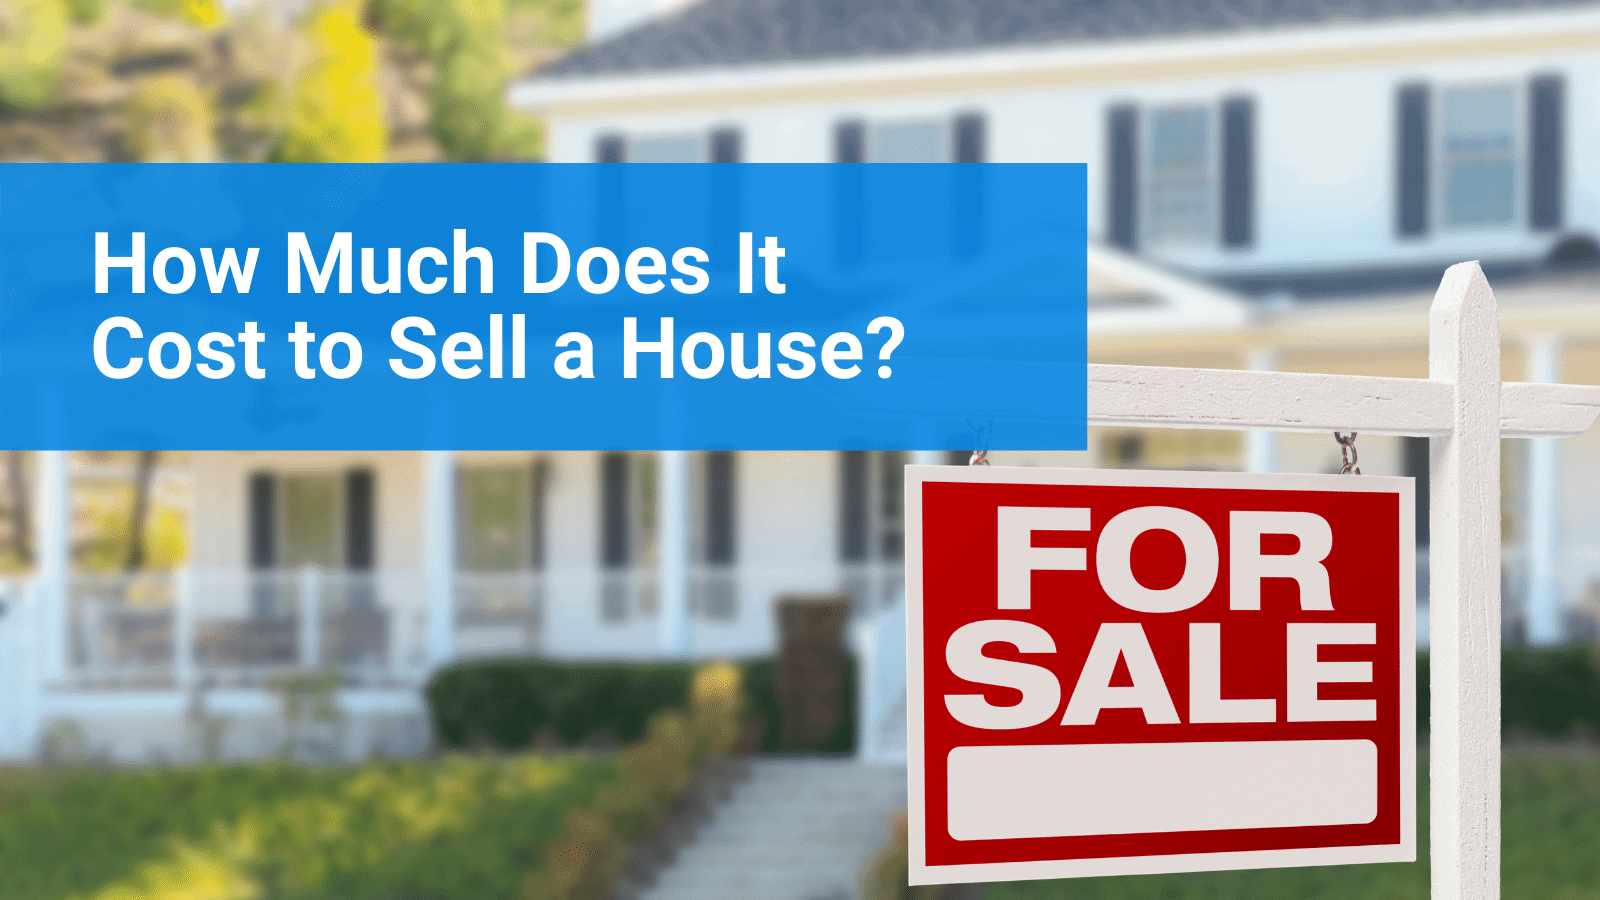 How Much Does It Cost to Sell a House